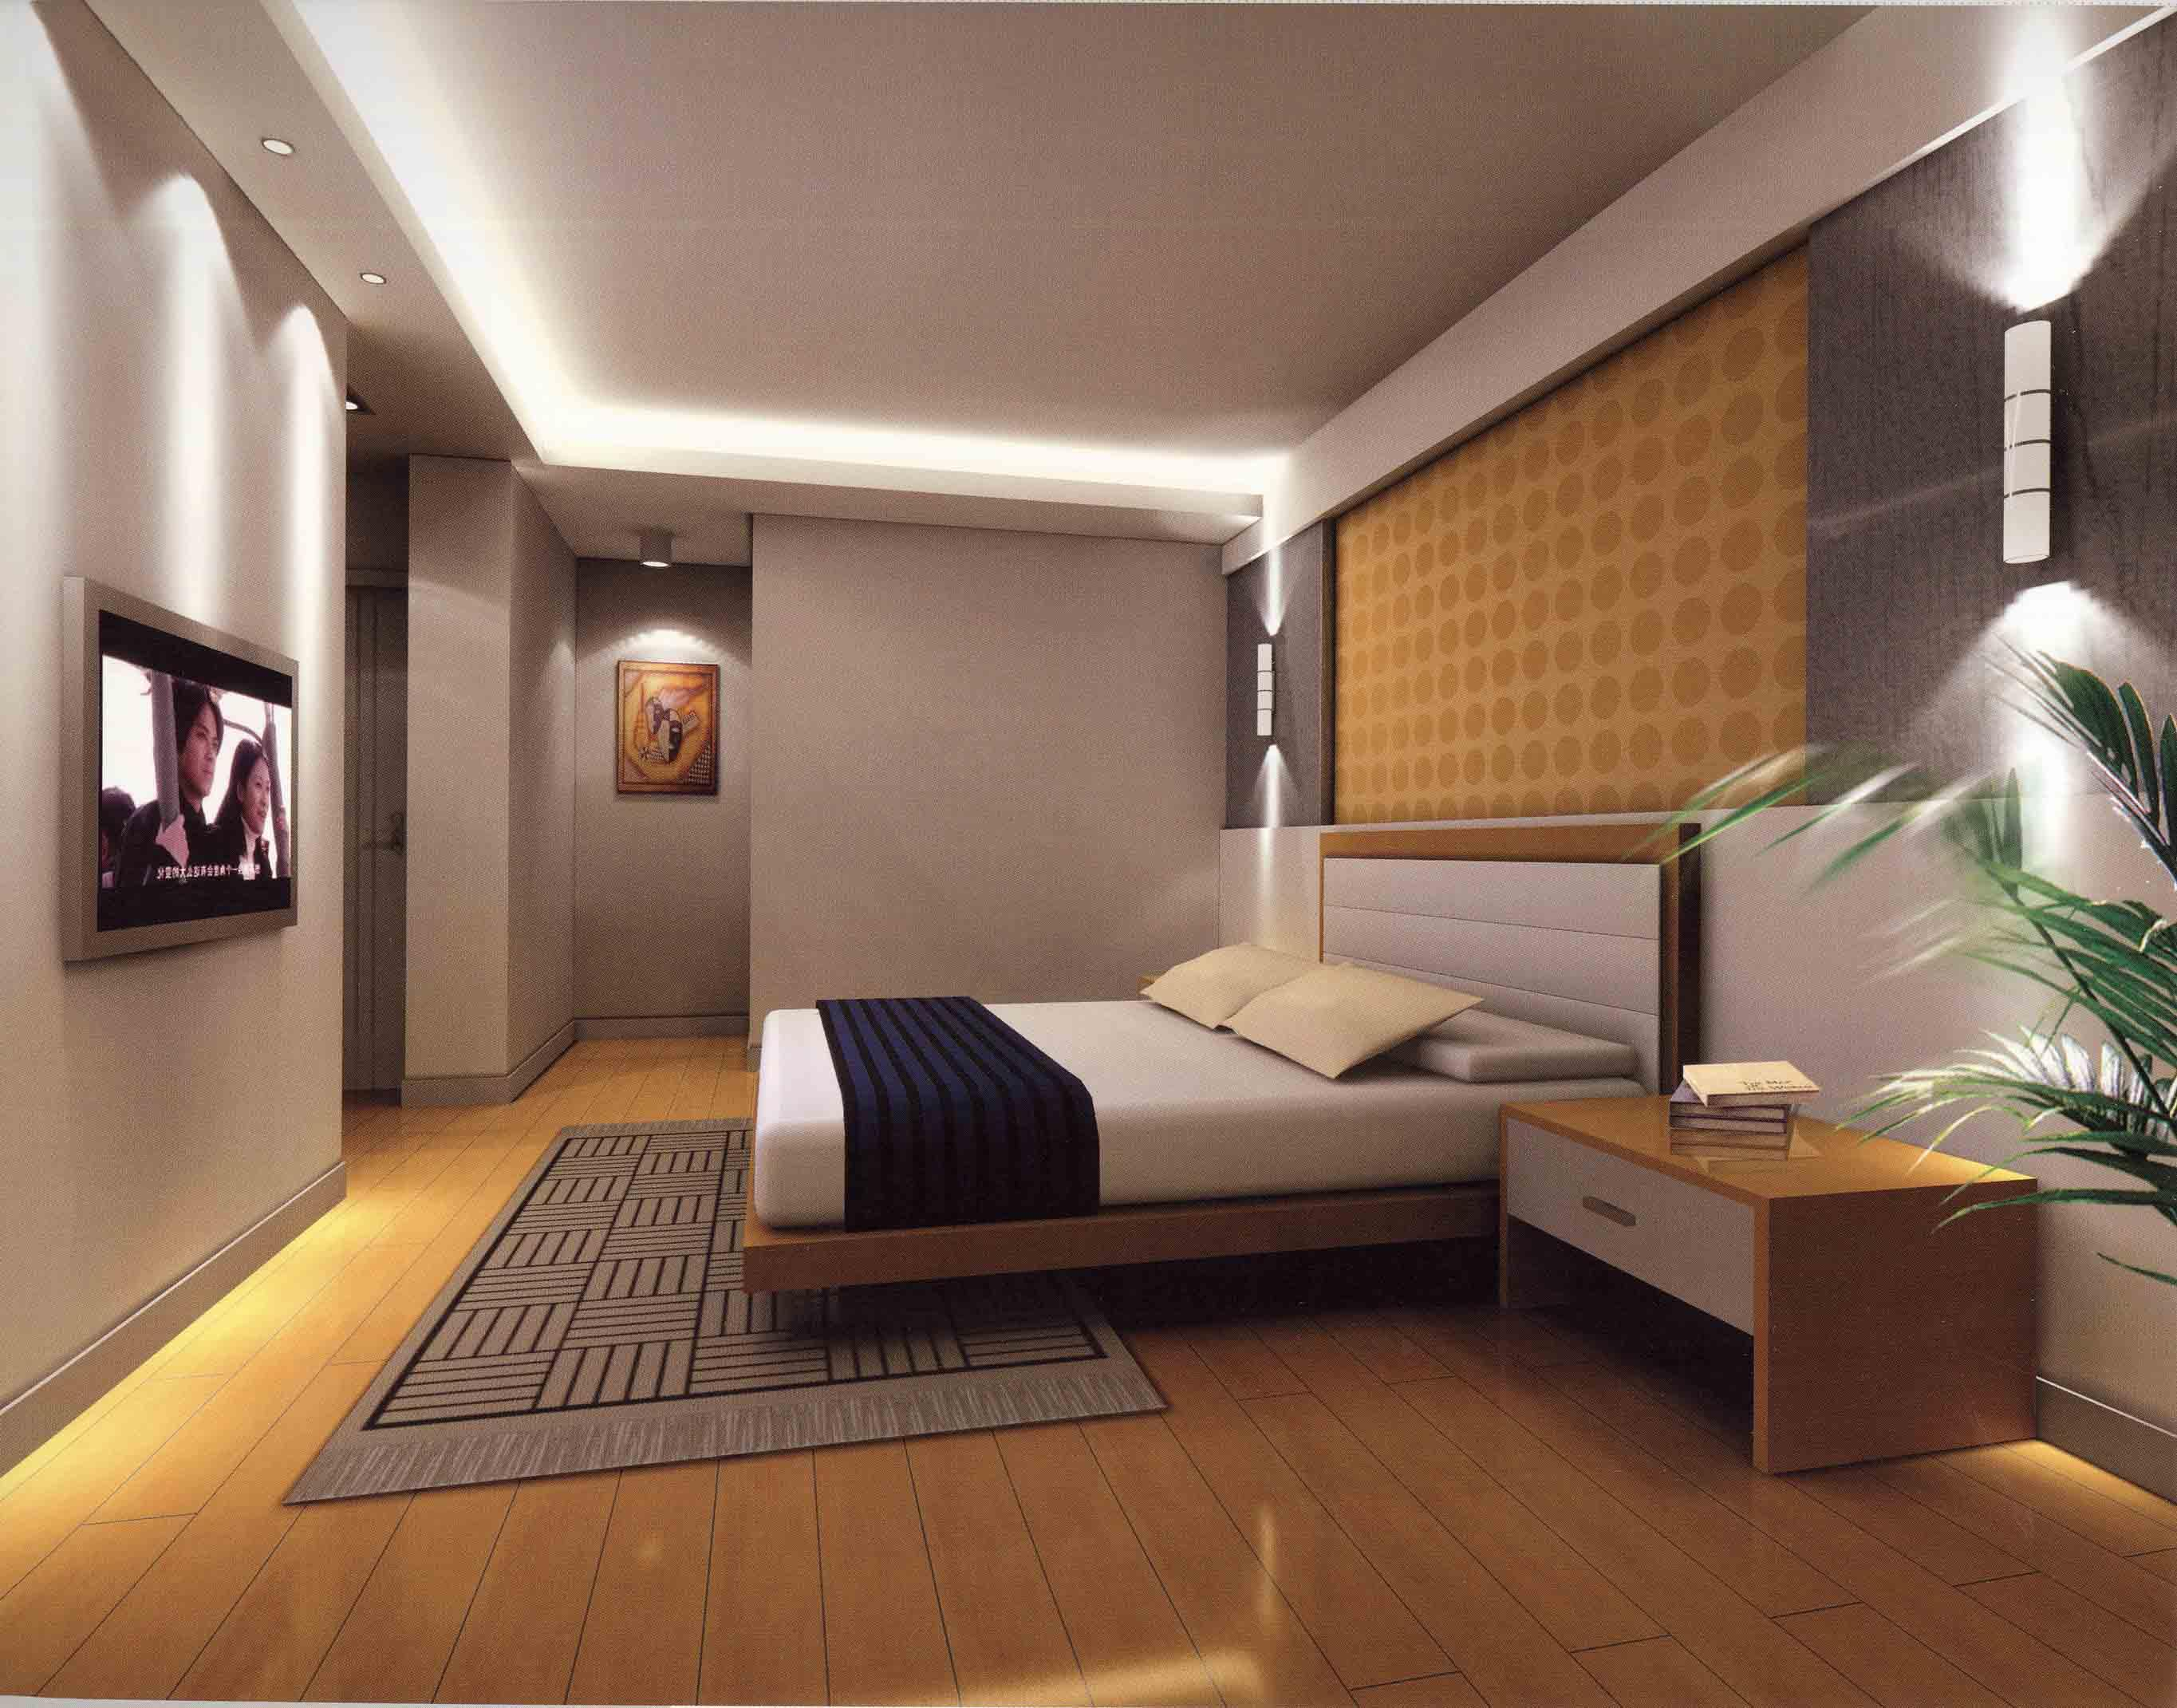 25 cool bedroom designs collection for Interior designs bedroom